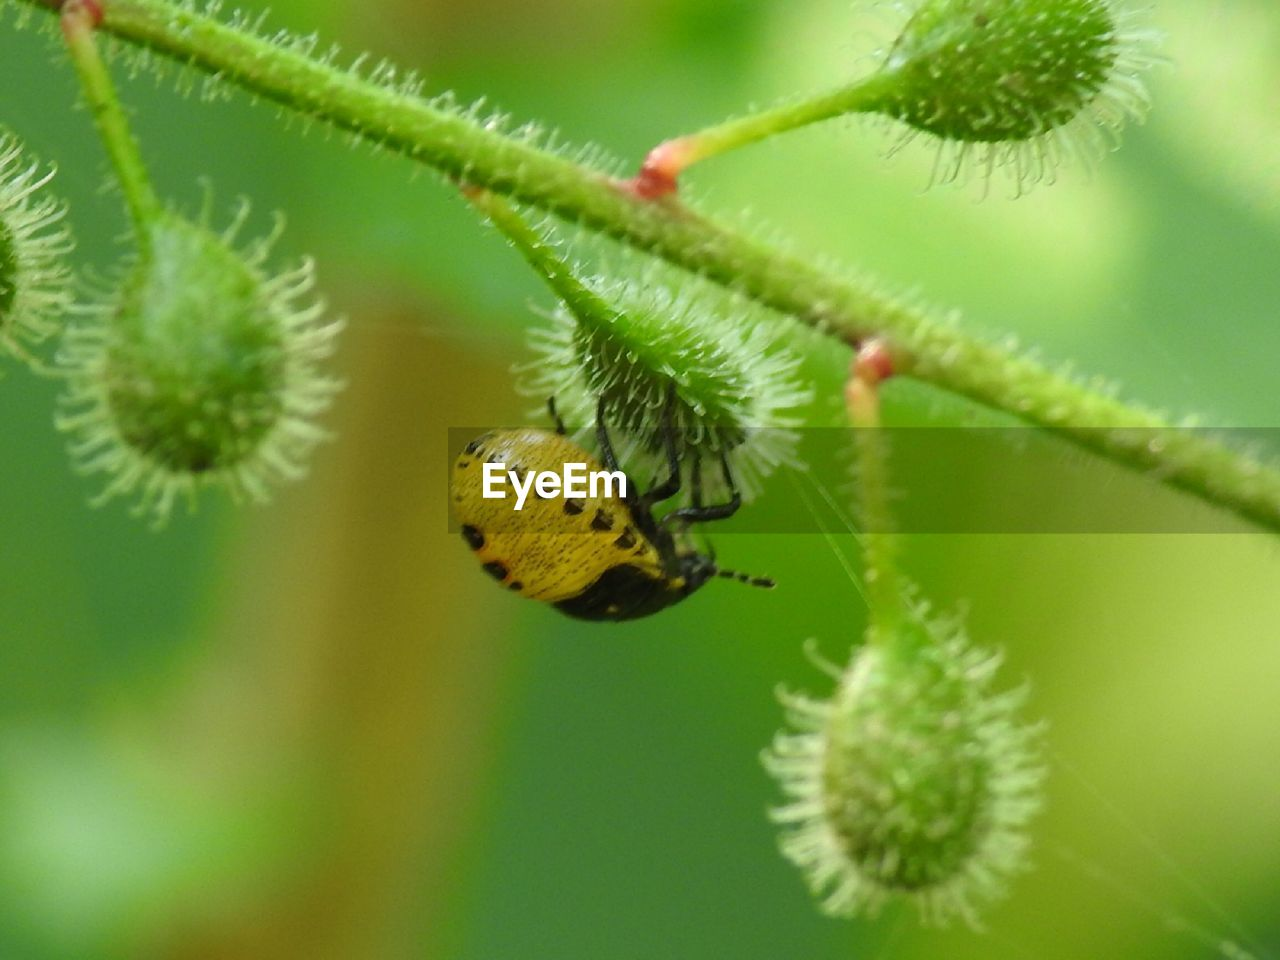 animal wildlife, animals in the wild, insect, animal themes, plant, animal, invertebrate, one animal, close-up, green color, beauty in nature, no people, day, focus on foreground, nature, selective focus, growth, flower, plant part, leaf, outdoors, butterfly - insect